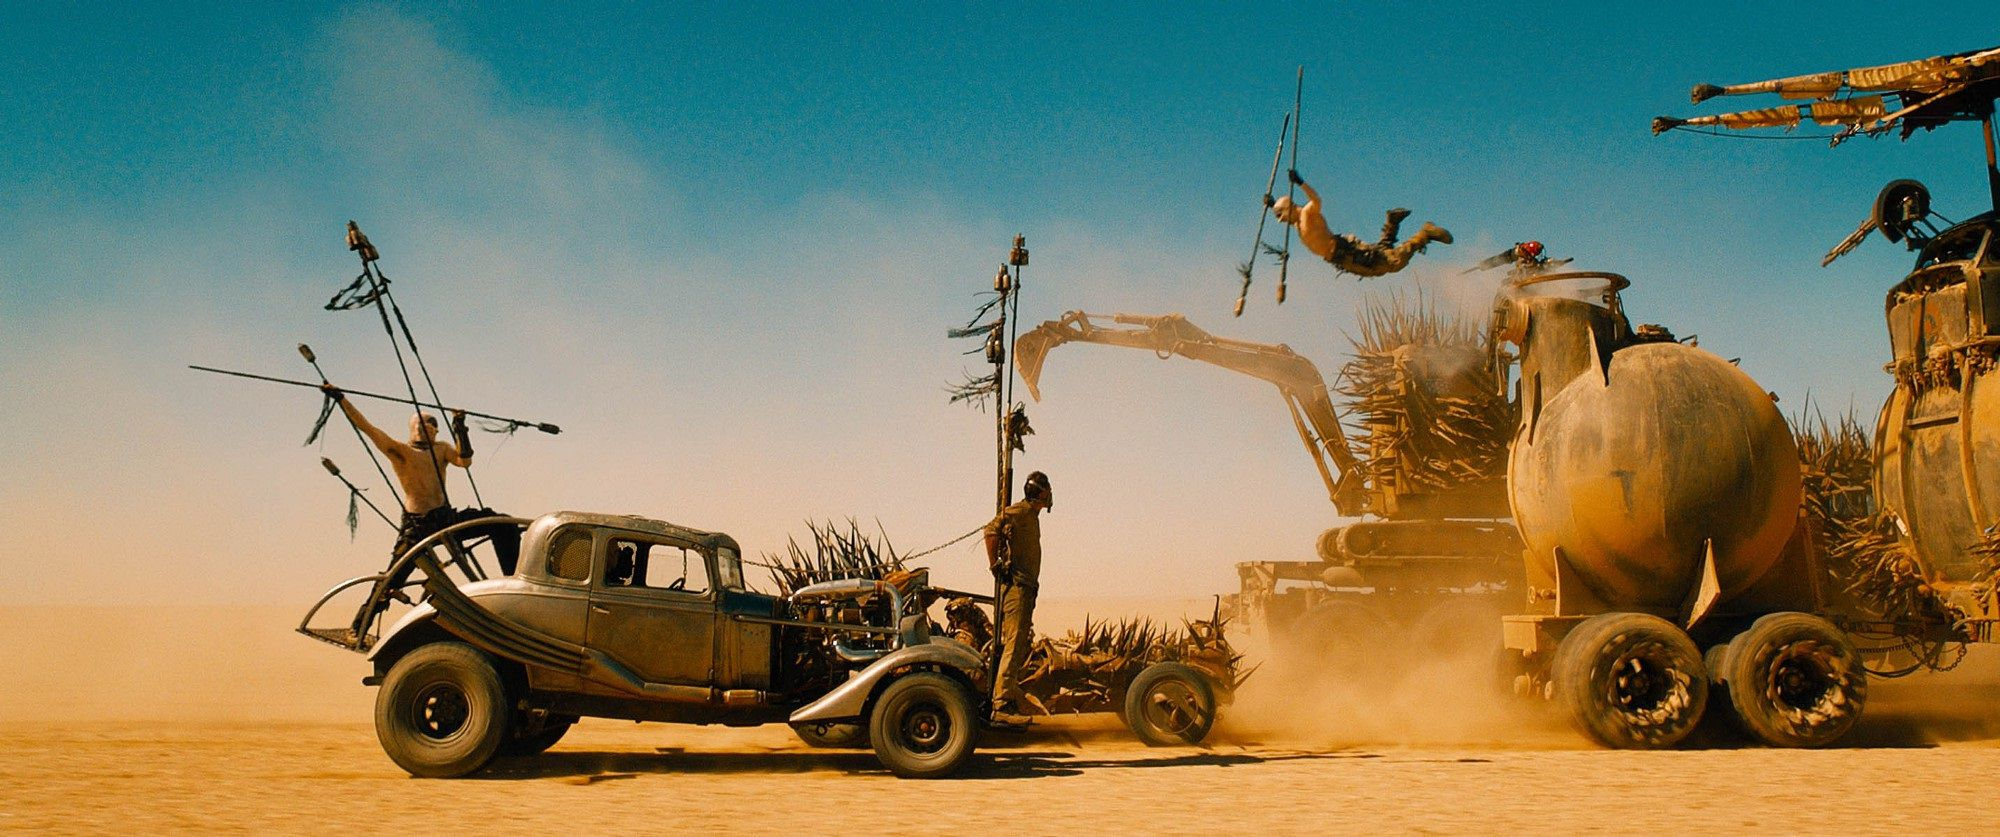 Mad Max Fury Road 2015 Science Fiction Movie scene desert